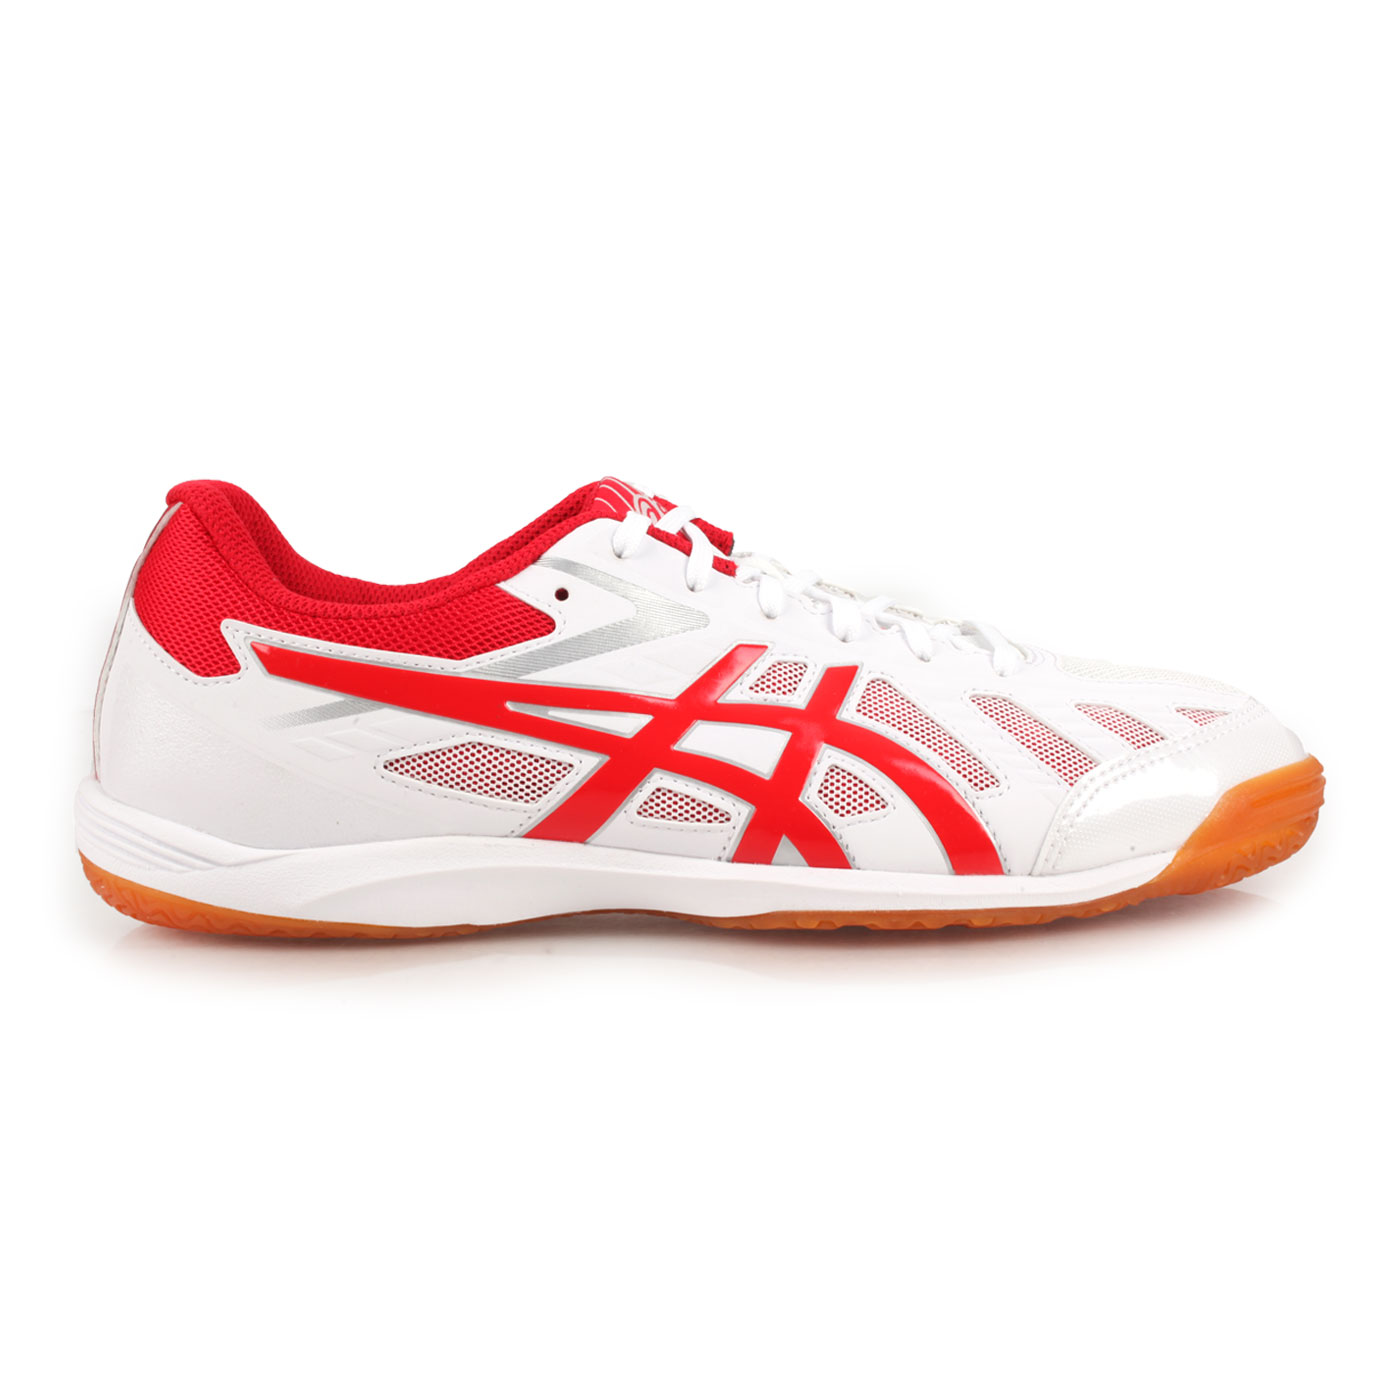 ASICS 桌球鞋  @ATTACK HYPERBEAT SP 3@1073A004-101 - 白紅